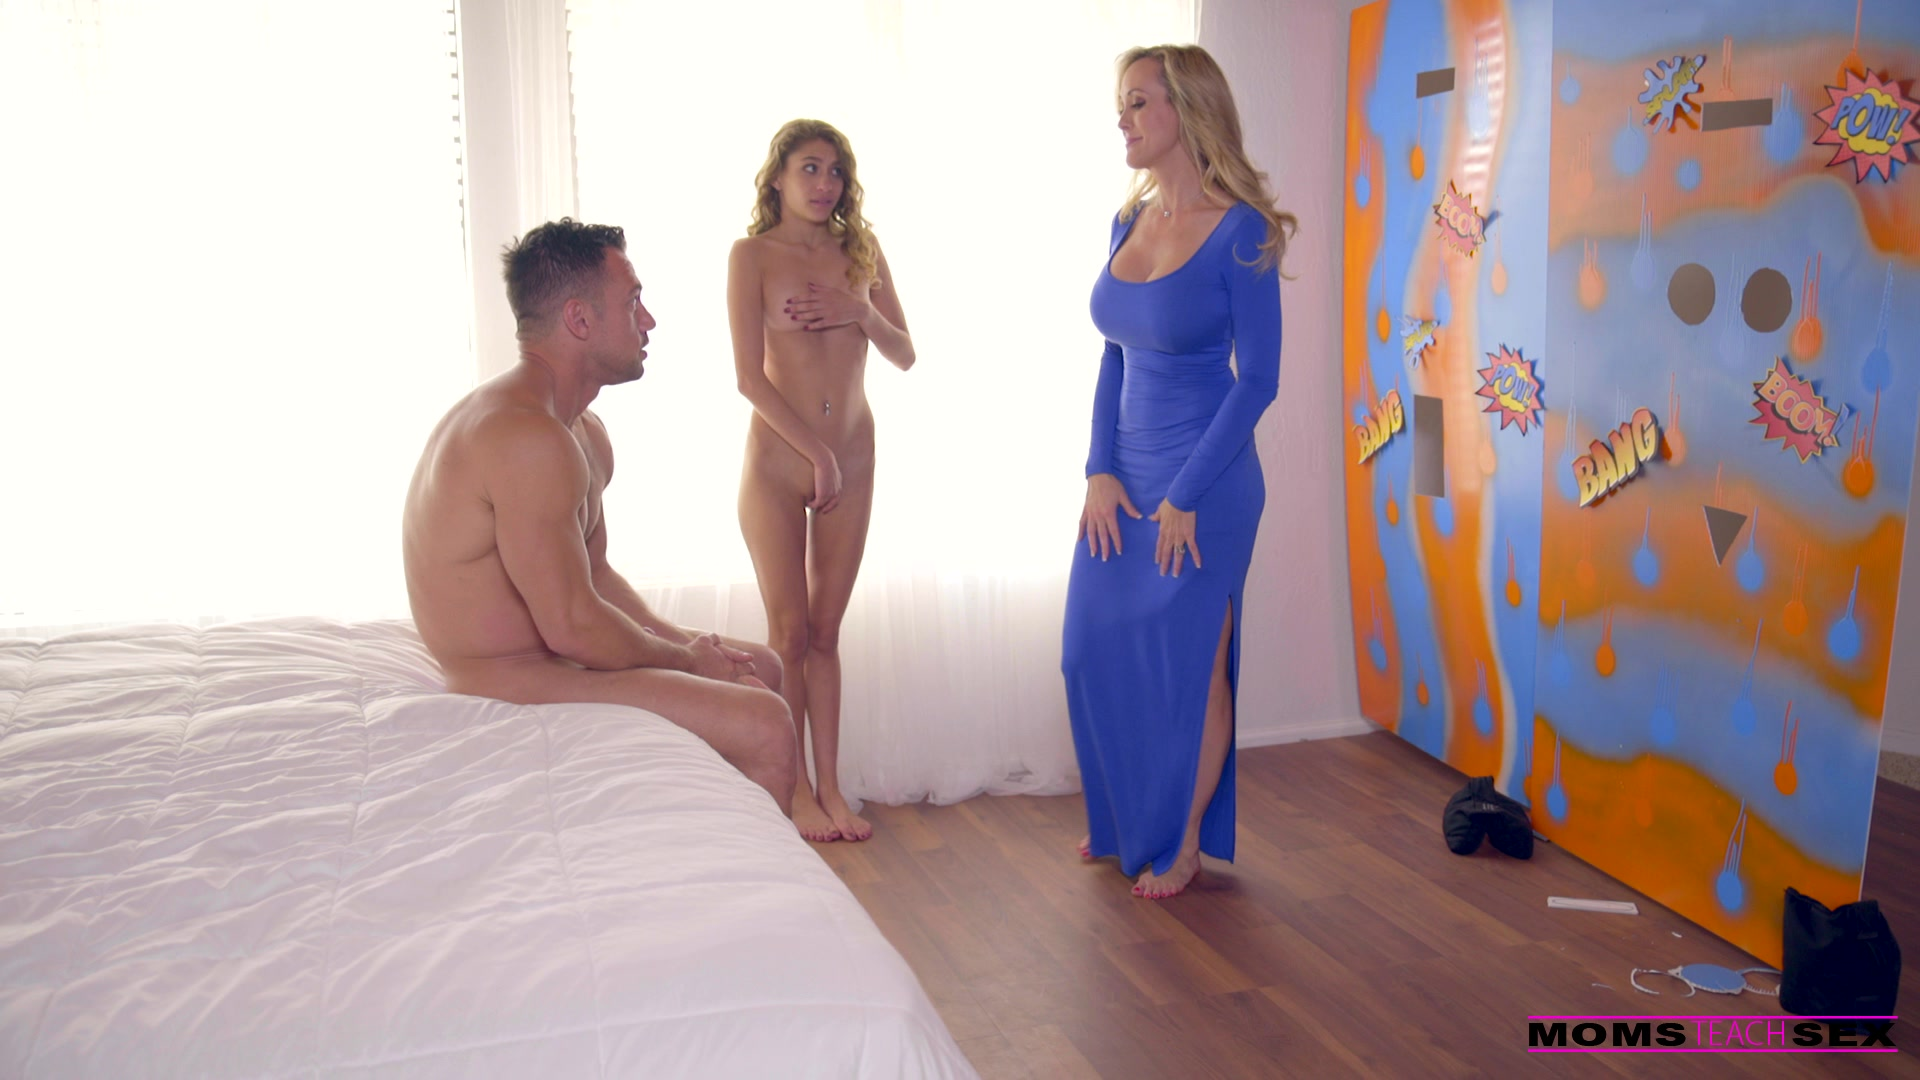 MomsTeachSex.com - Brandi Love,Rebel Lynn: While Mom Is Away - S4:E8